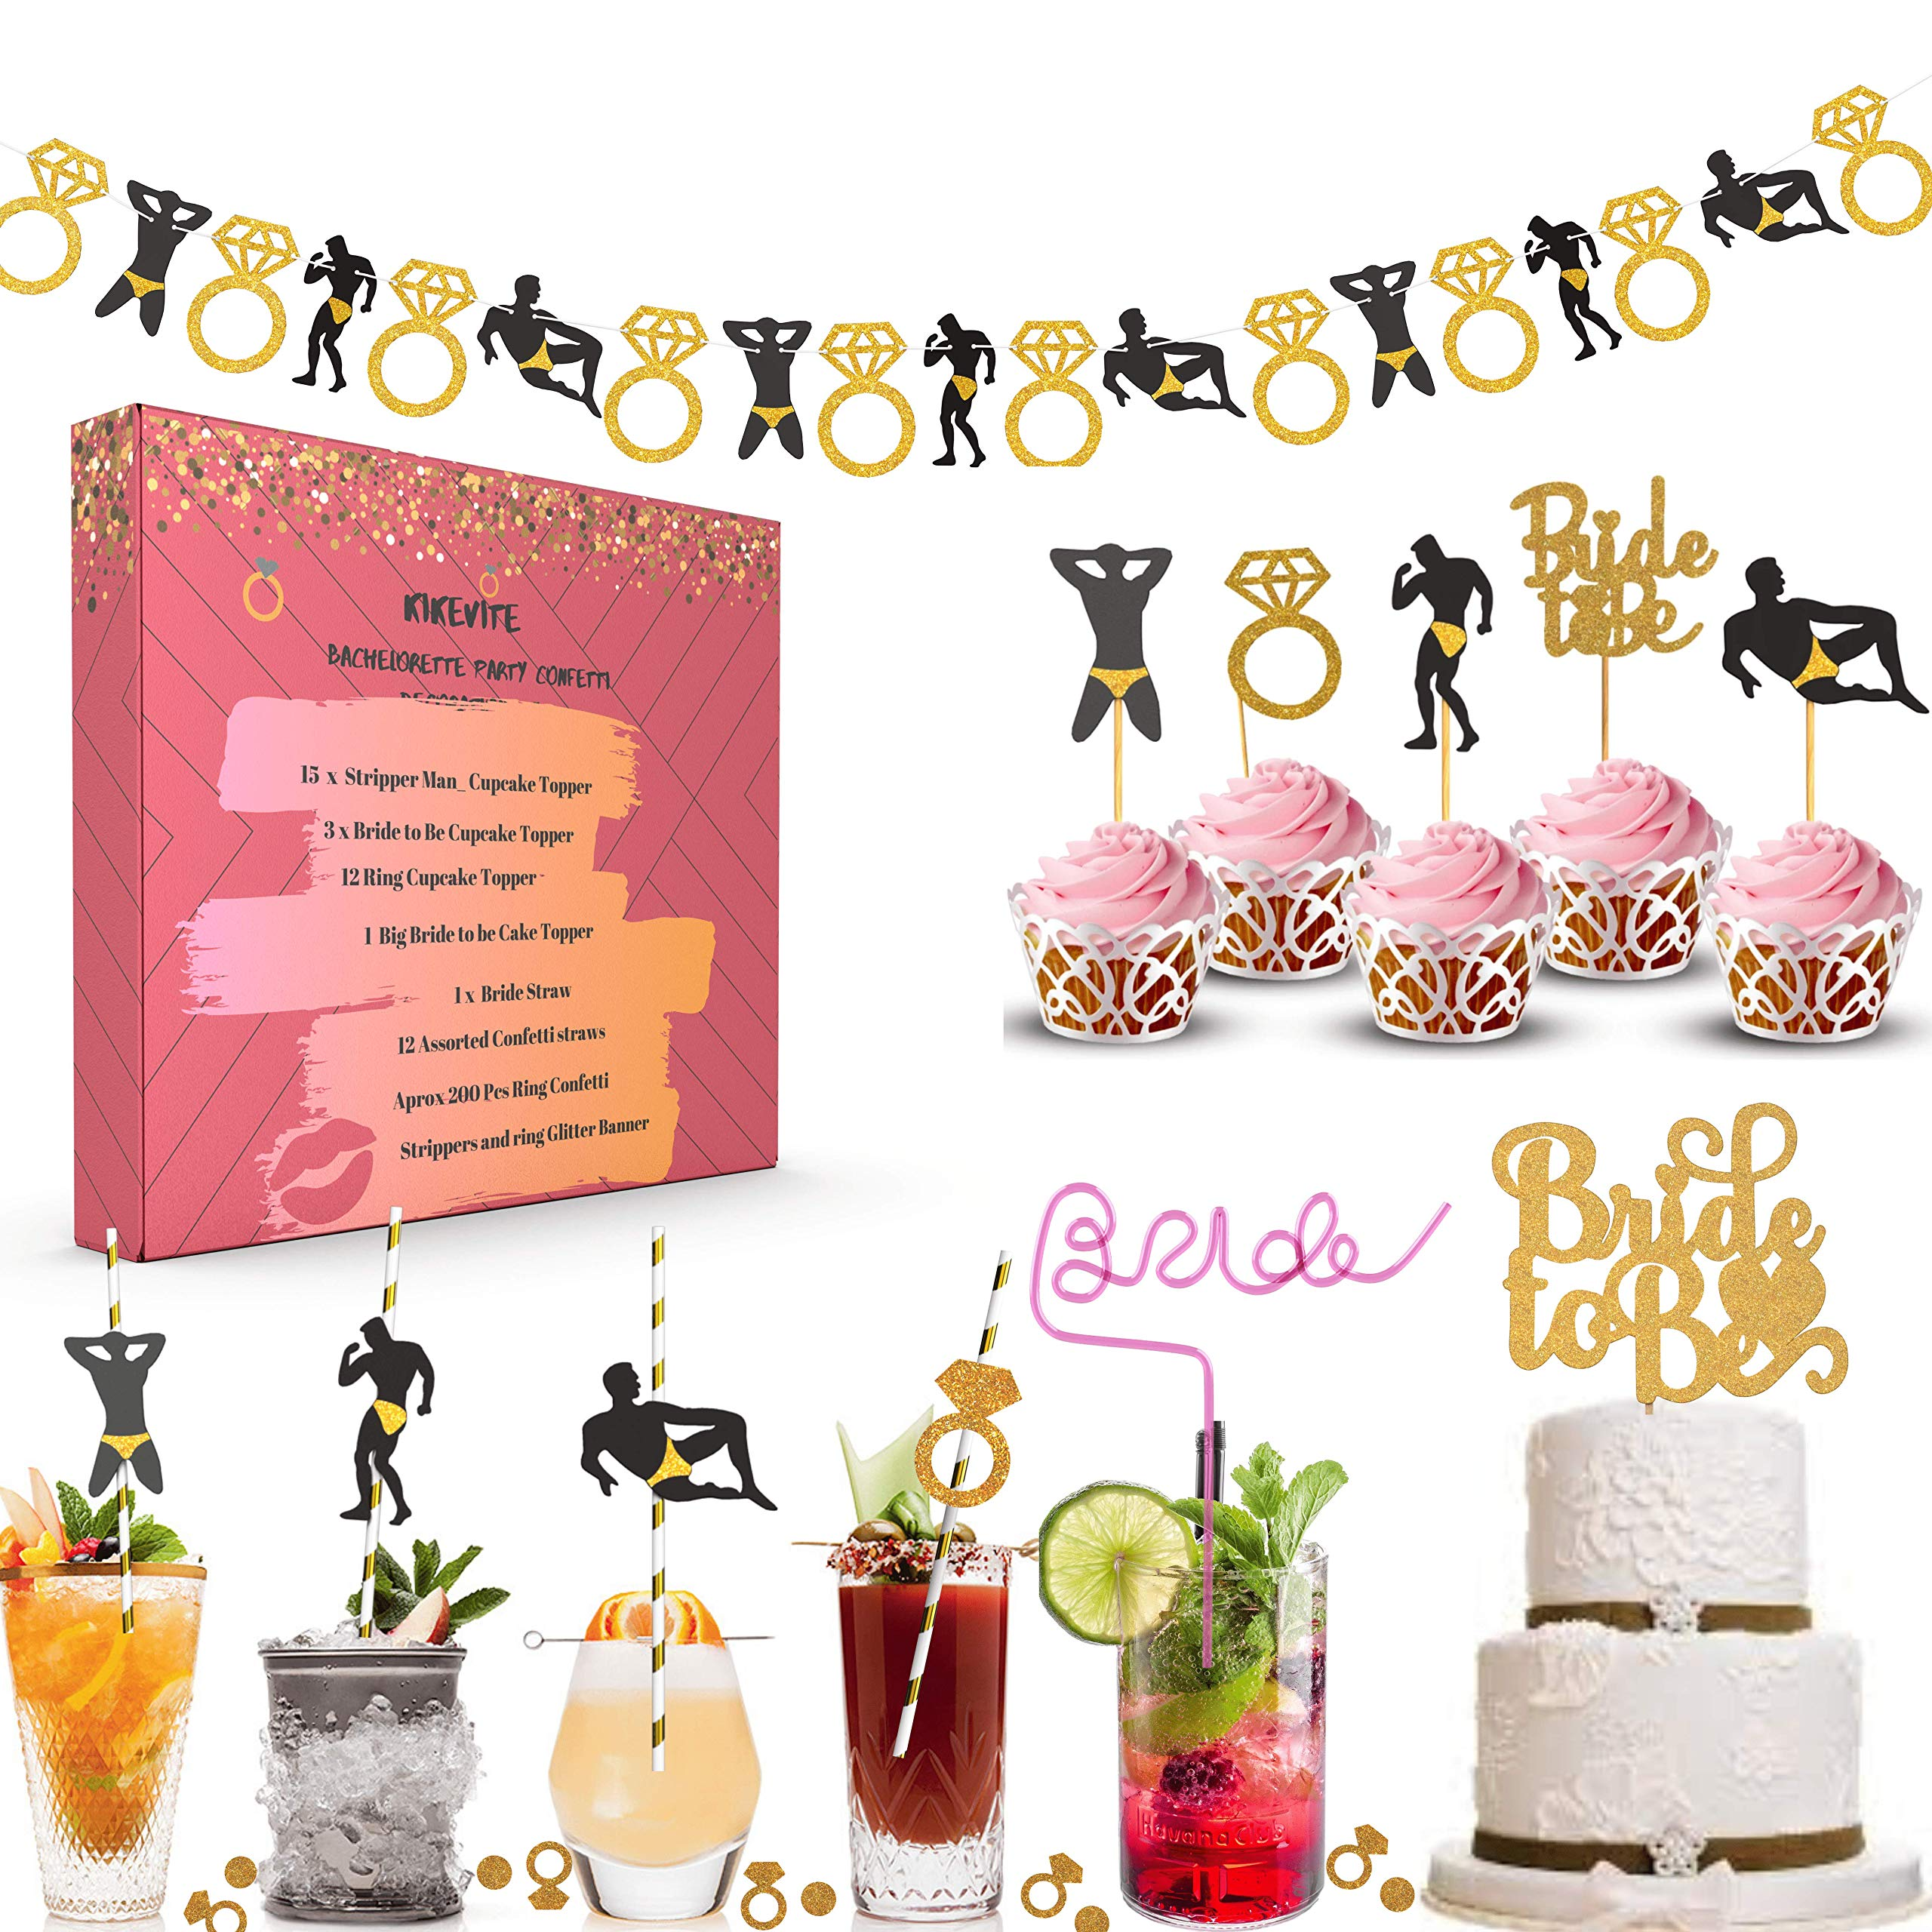 Bachelorette Party Supplies and favors for the Bachelorette Party Decorations Bachelorette Party Straws with 1 Huge Naughty Bride Straw Girls Night Out /& Hens Night Decor Kit